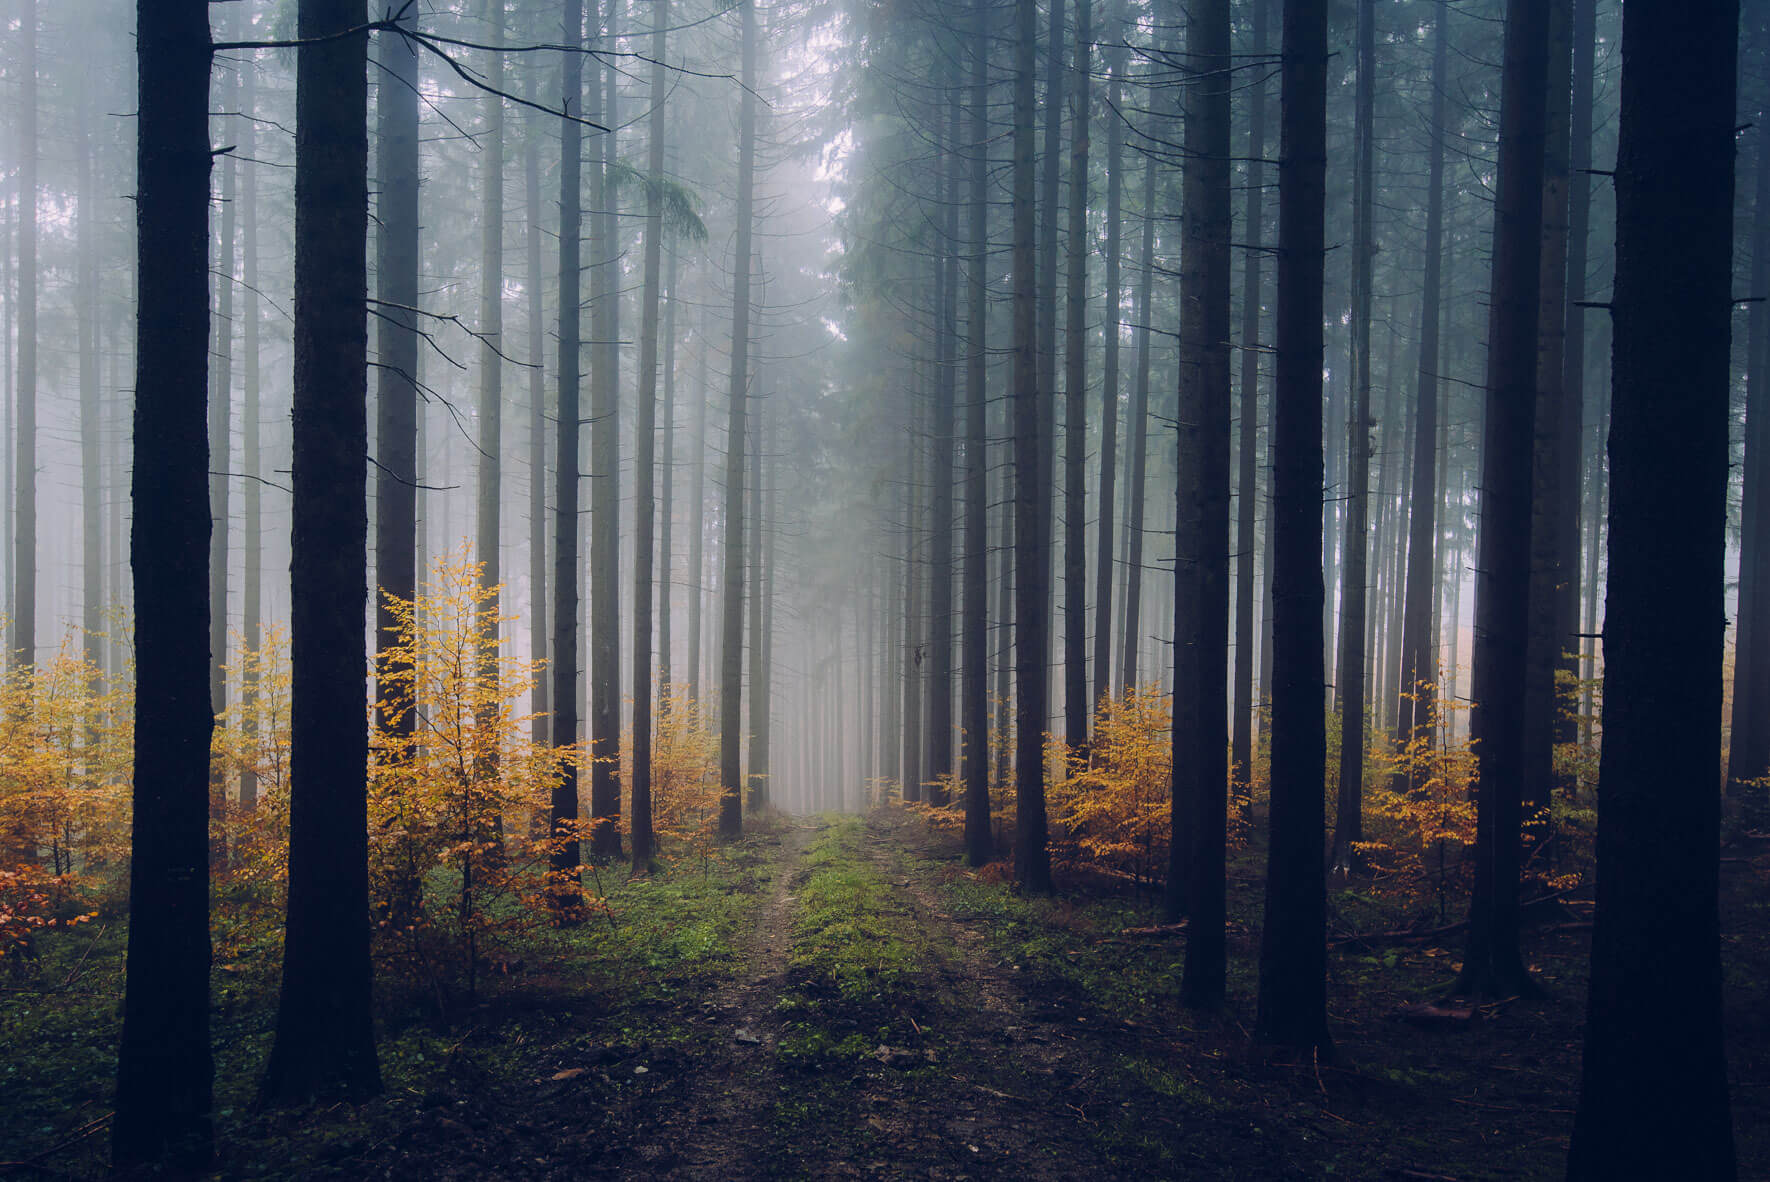 Northlandscapes – Atmospheric landscape photography of the North by Jan Erik Waider